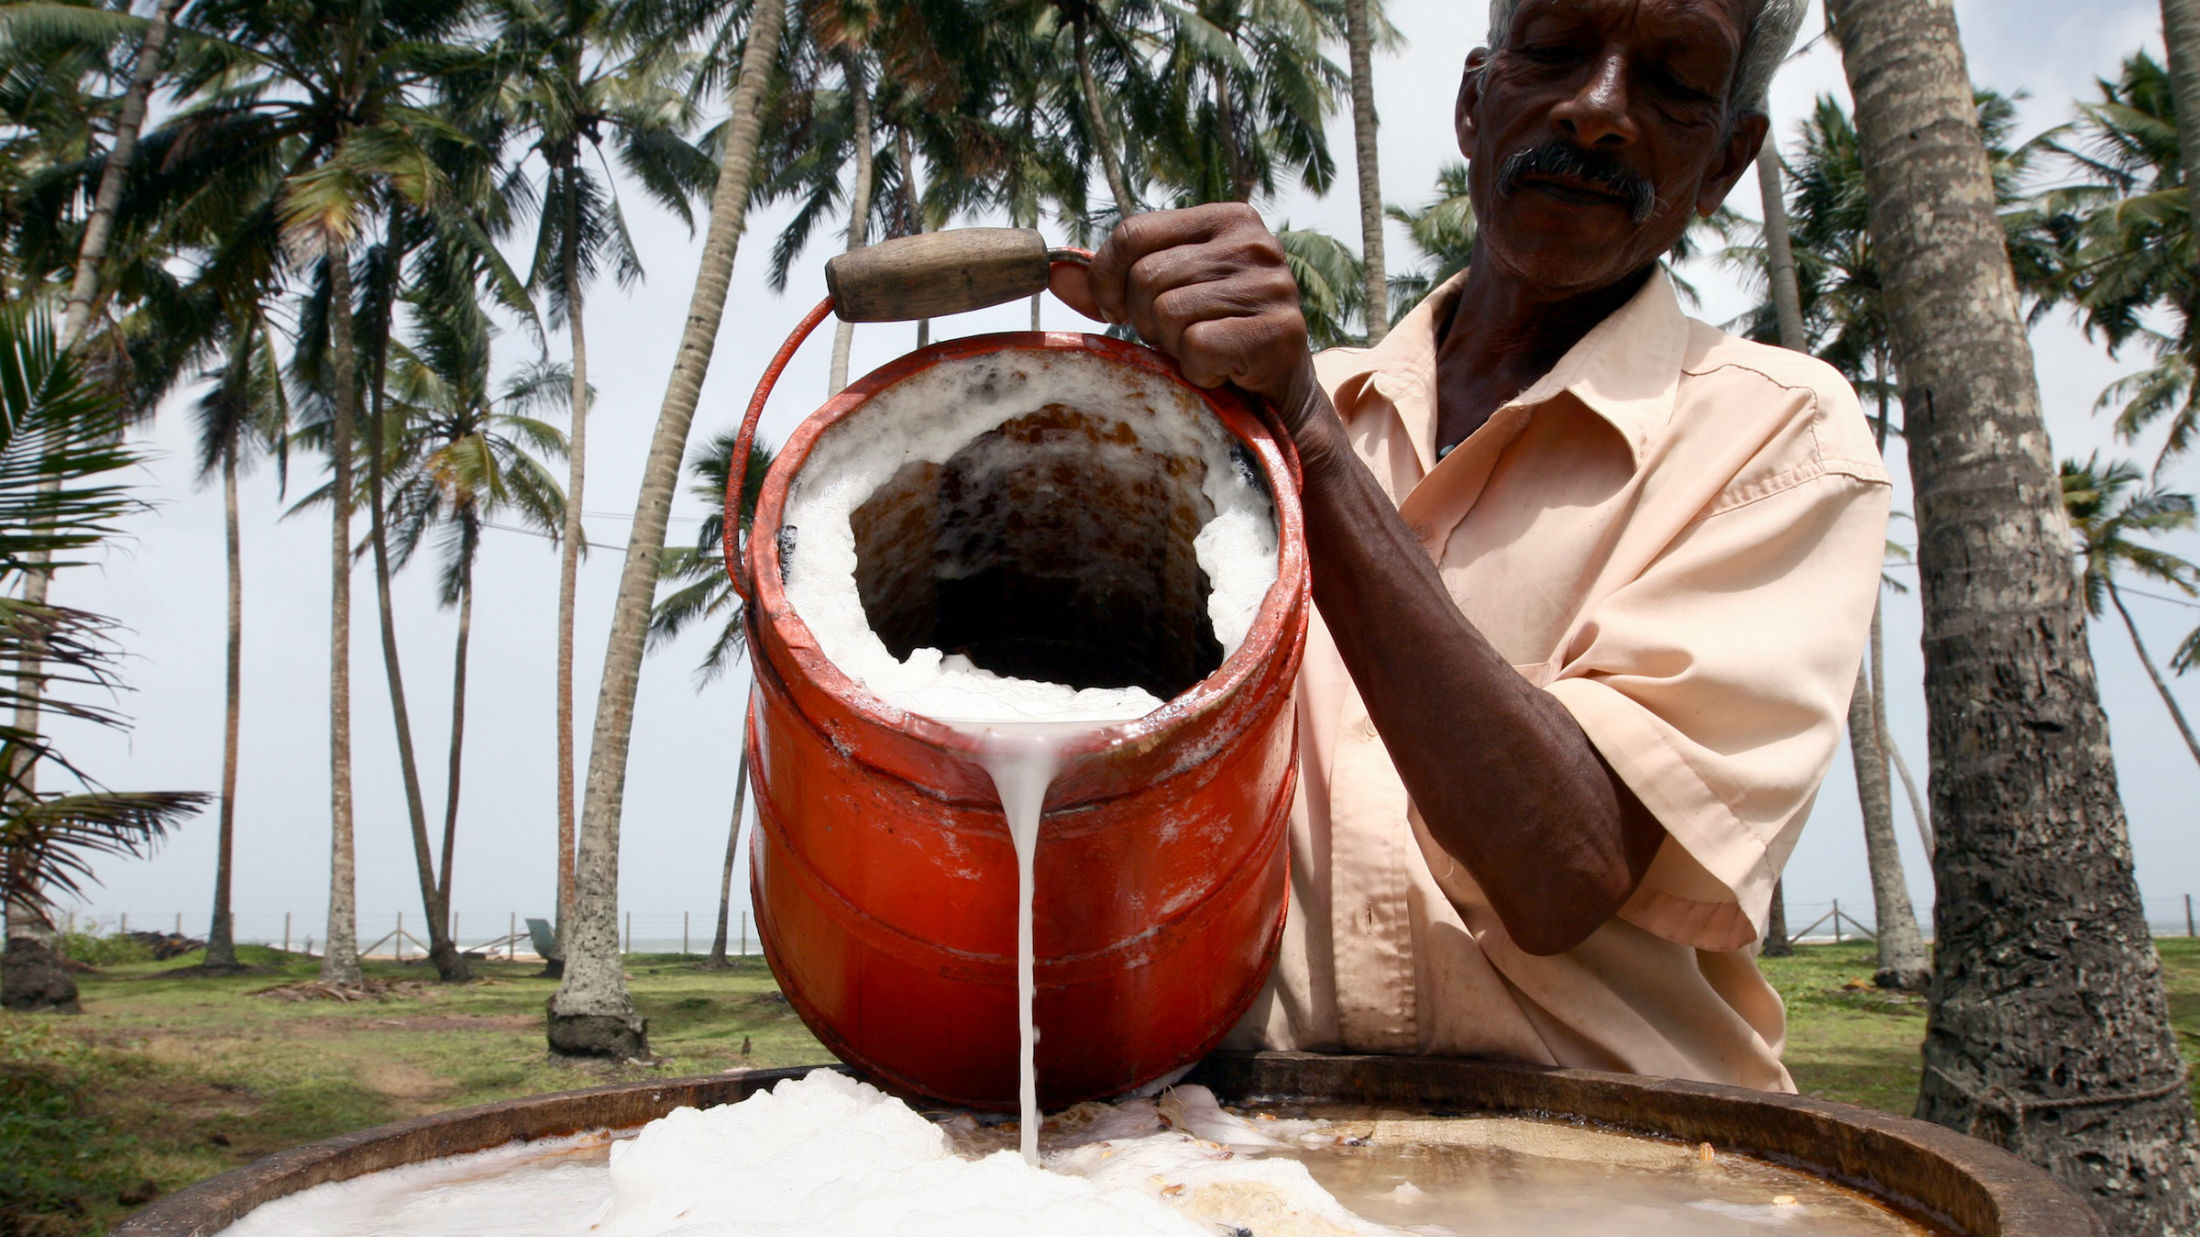 Worker pours toddy from his toddy pot after collecting the sap from a coconut palm tree in order to make palm wine, or toddy, as it is locally known on June 11, 2012 in Kalutara, Sri Lanka. Palm Wine is made by fermenting the collected sap from Palm trees, and is a popular drink across Asia and some parts of Africa. (Photo by Buddhika Weerasinghe/Getty Images